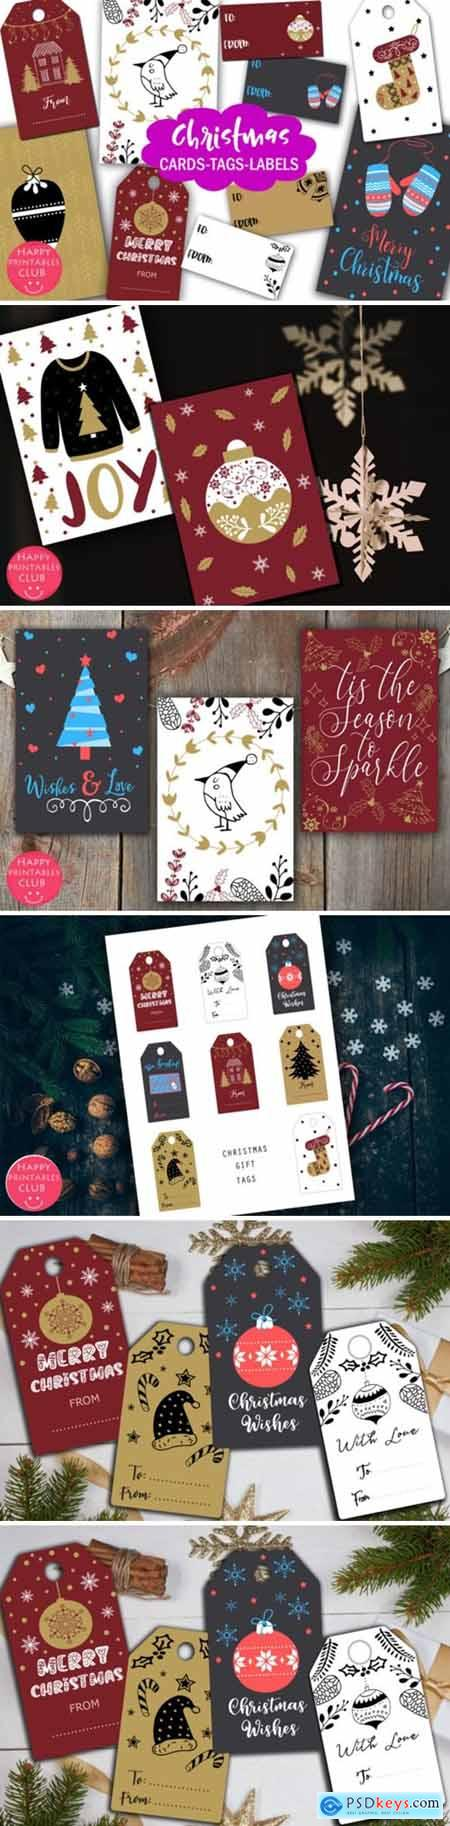 Christmas Cards-Gift Tags-Labels Holiday 1948479